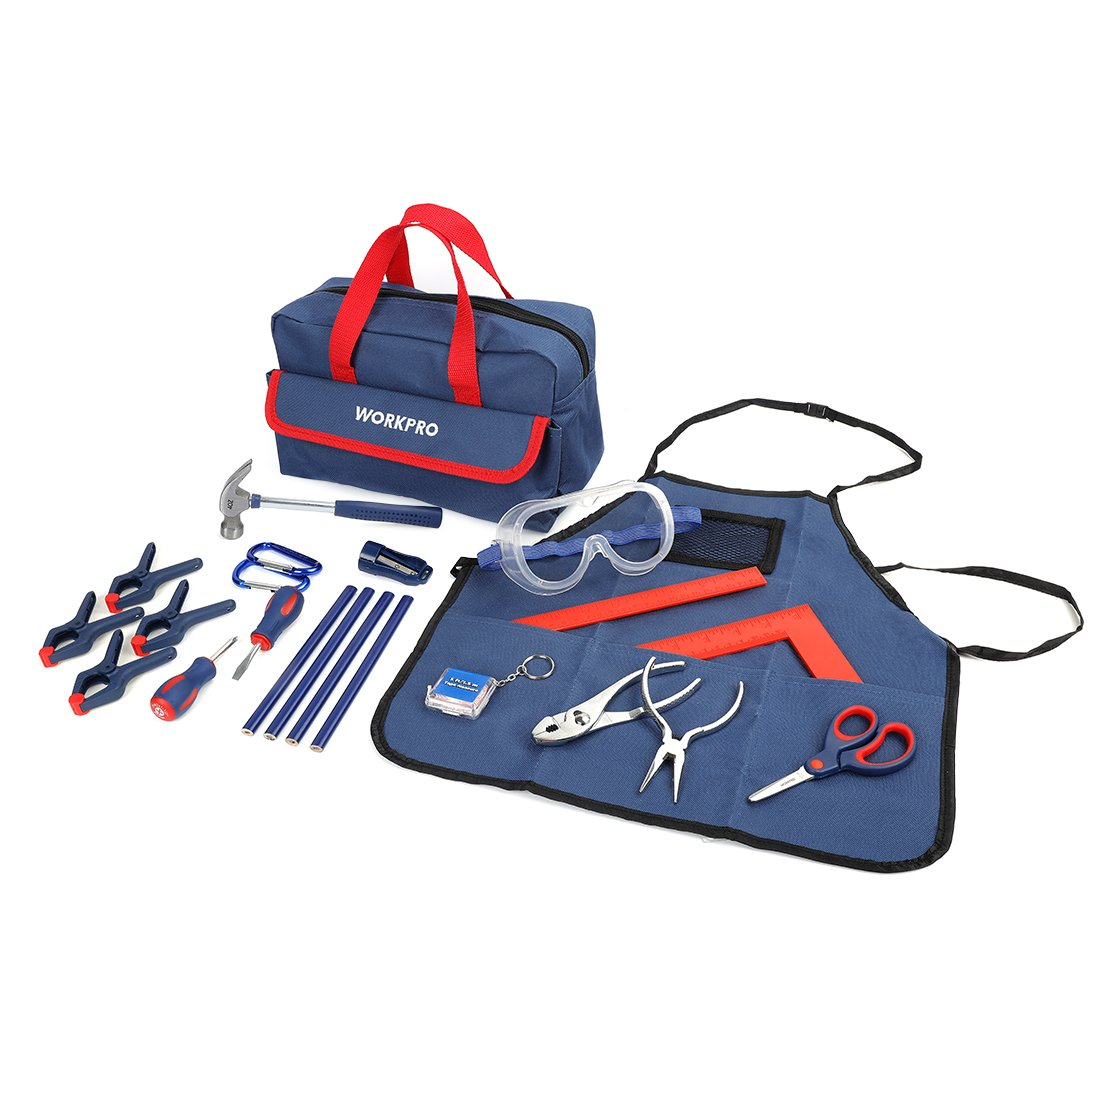 WORKPRO 23-piece Children's Real Tool Kit with Bag LTD